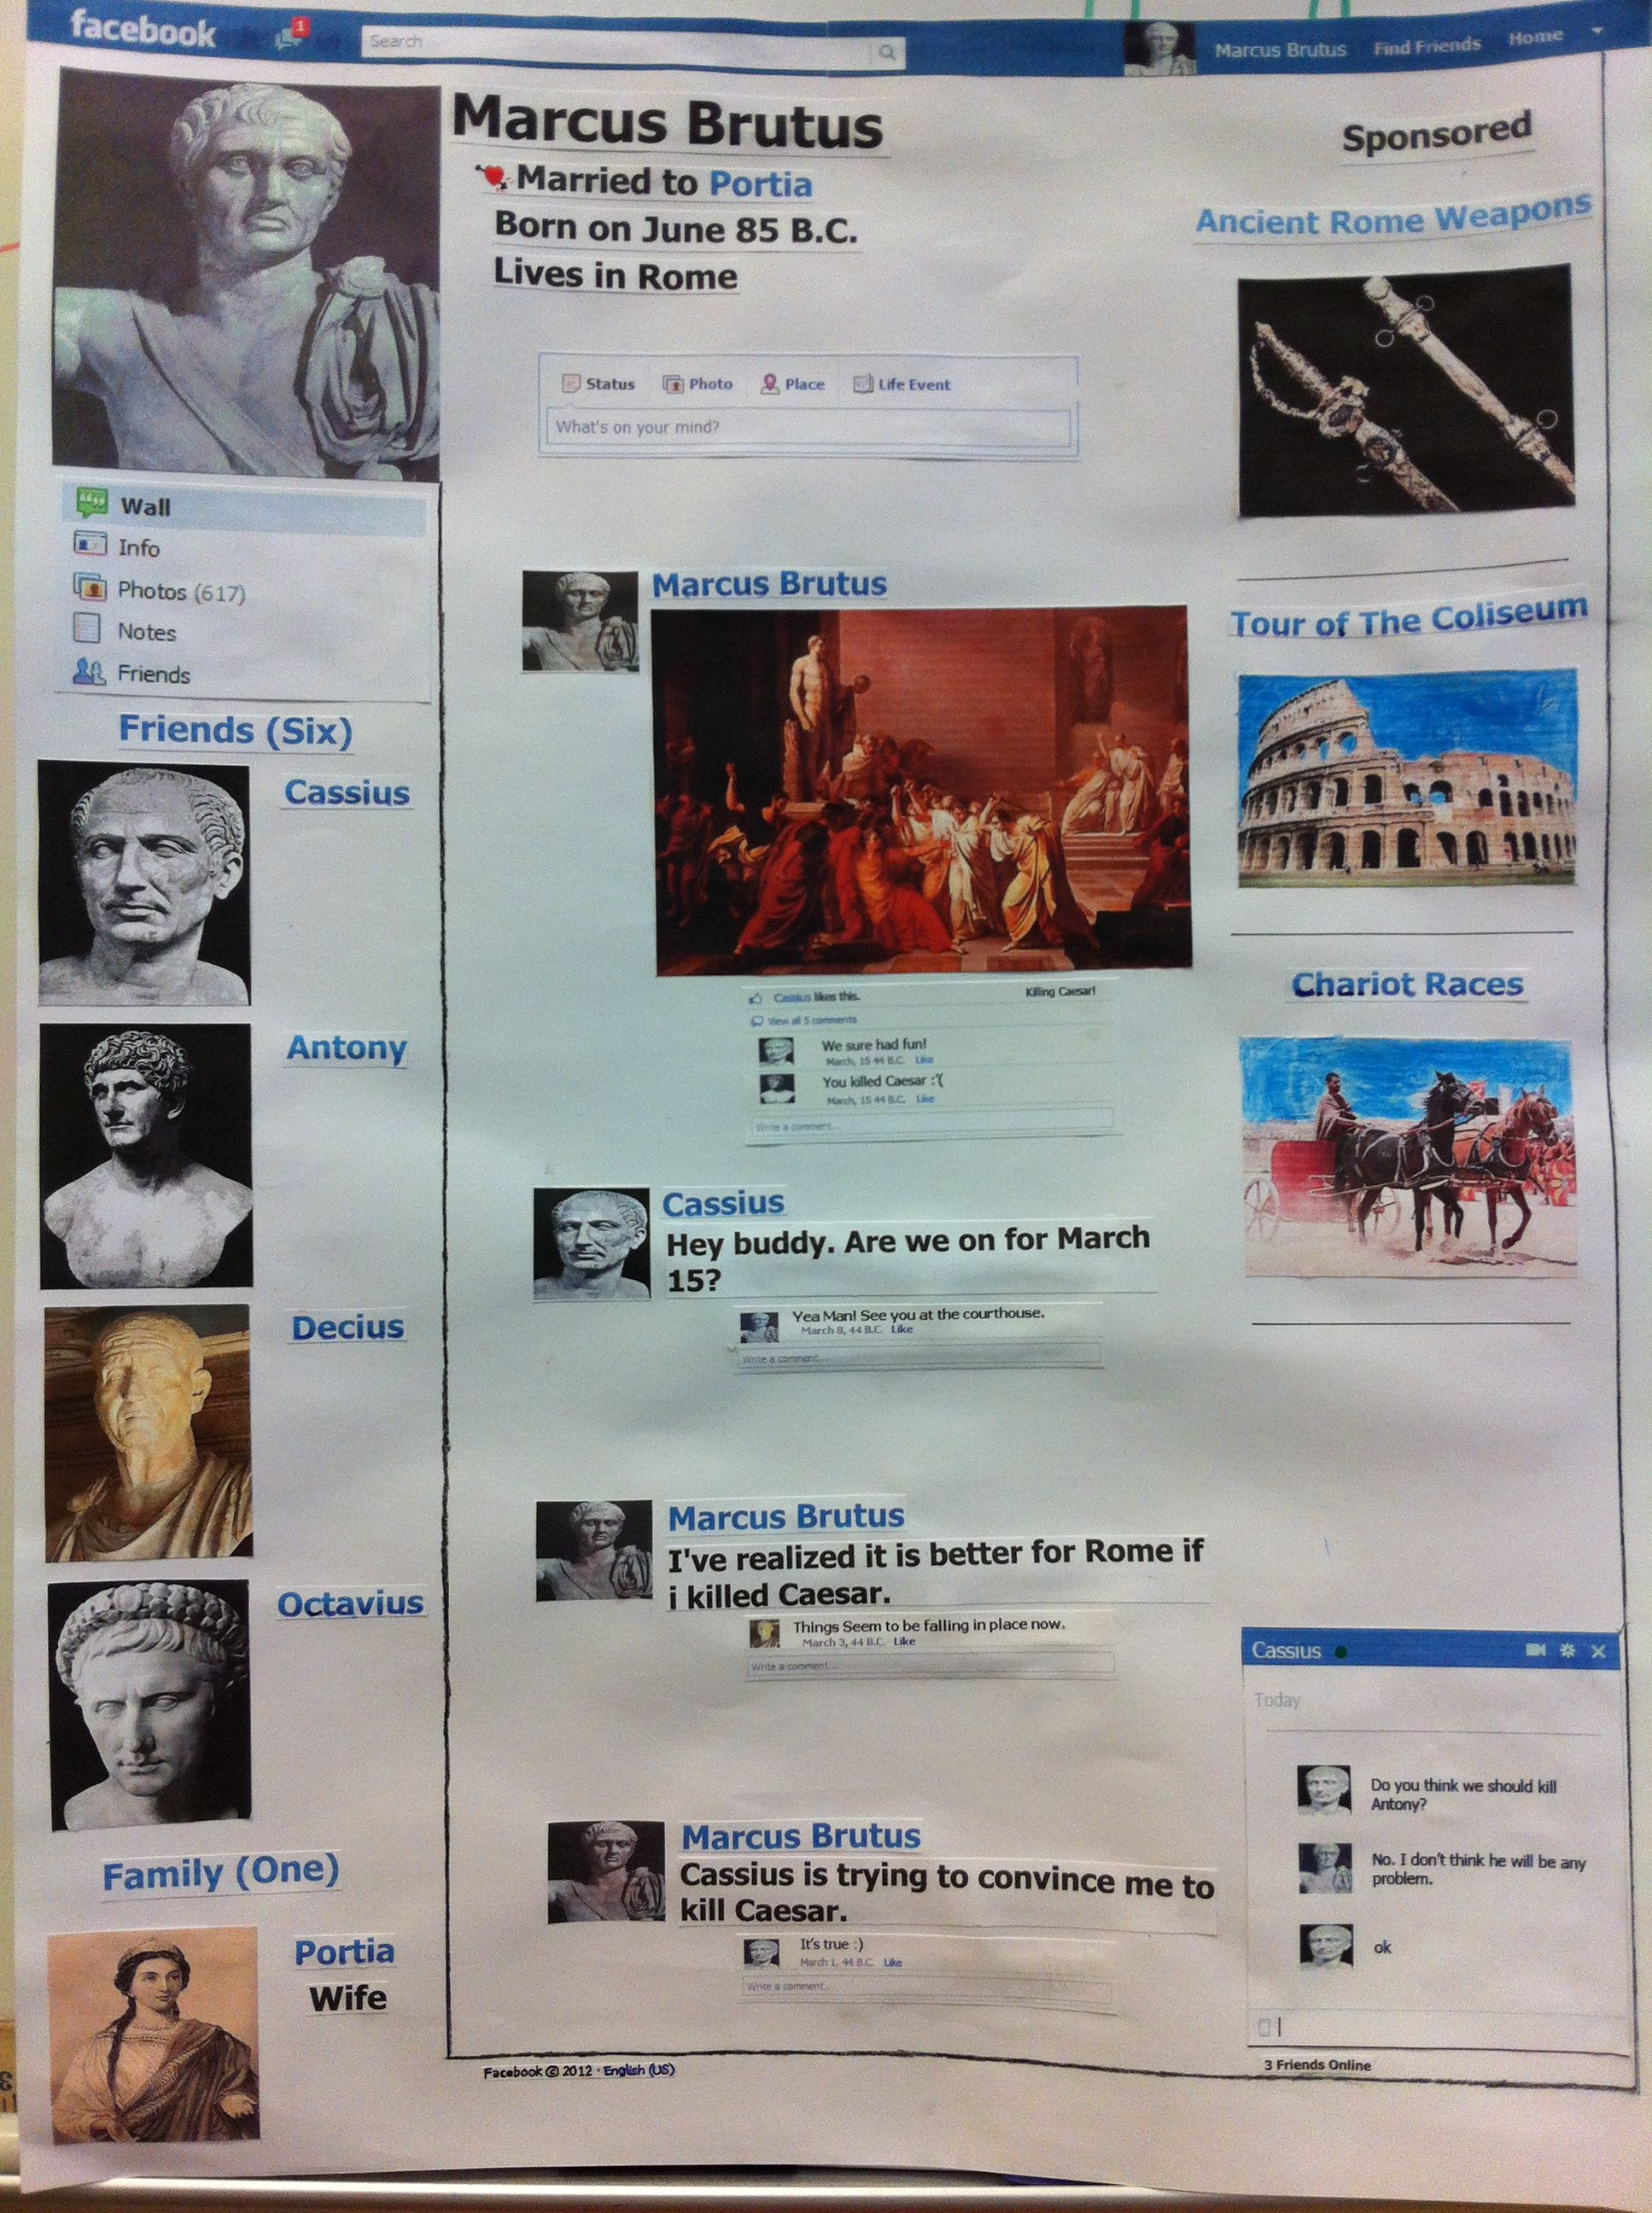 A Facebook Page Of Marcus Brutus Friends Of Caesar